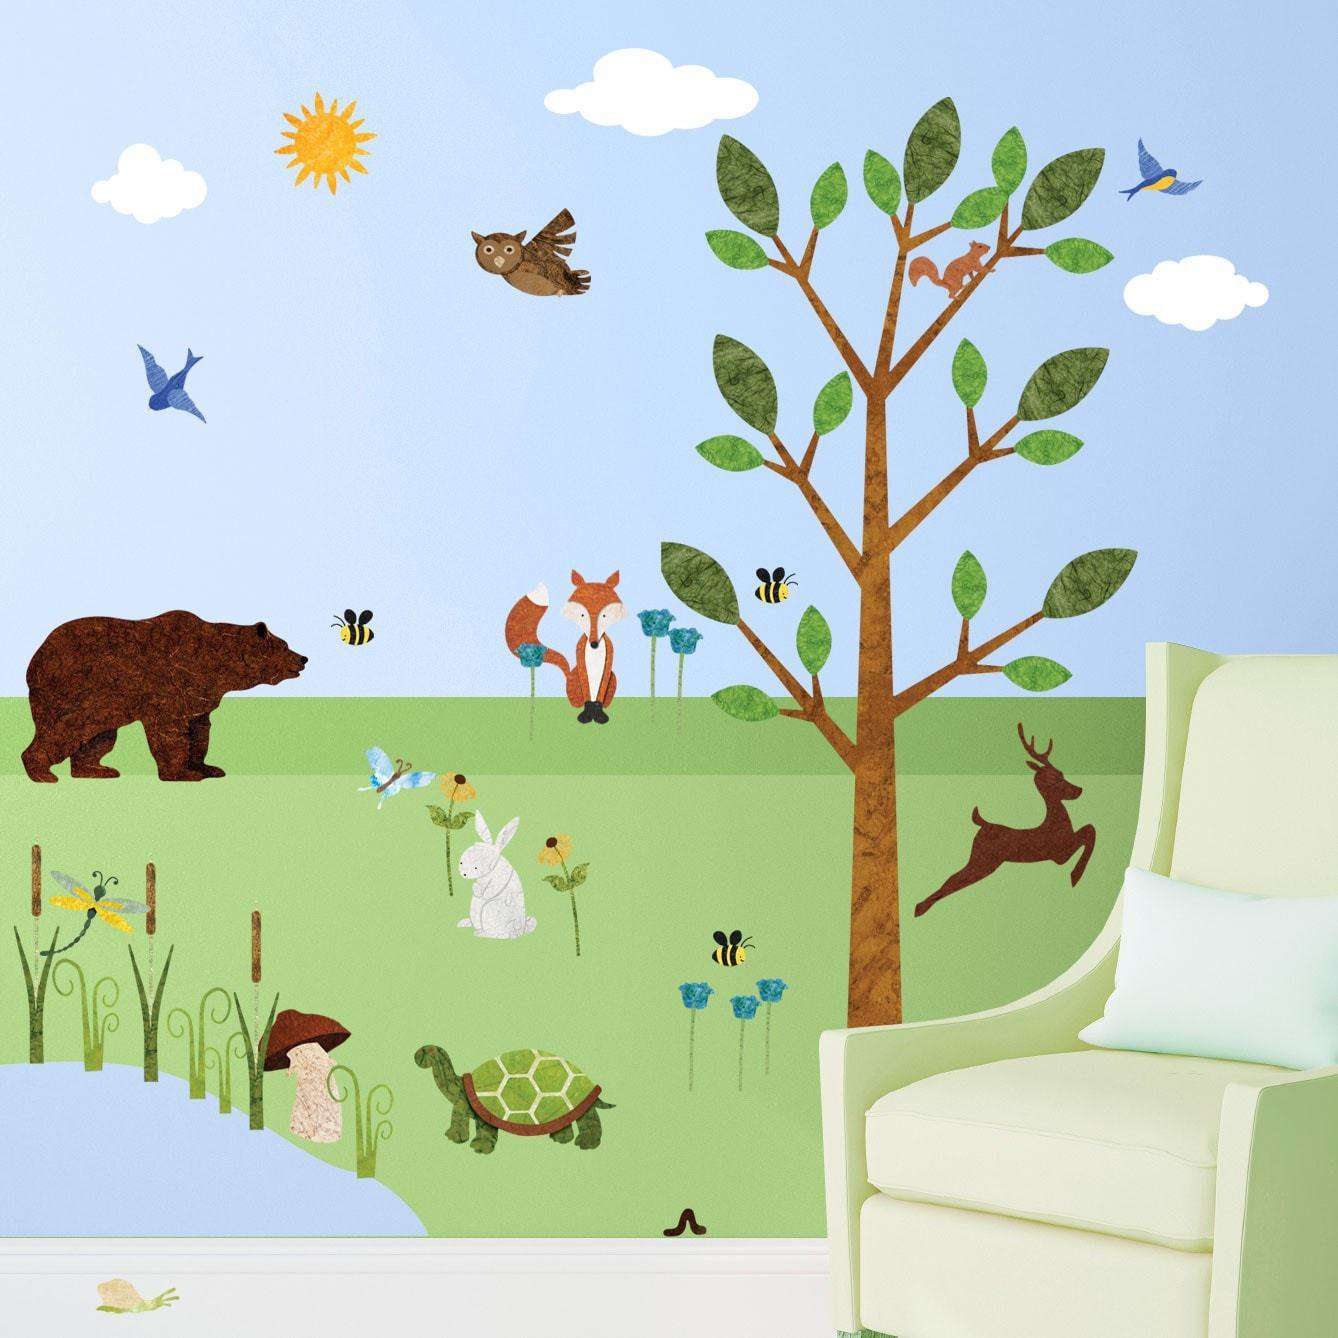 forest friends wall mural stickers decals free personalization forest wall sticker set 37 peel stick woodland decals for nursery and kids mini set